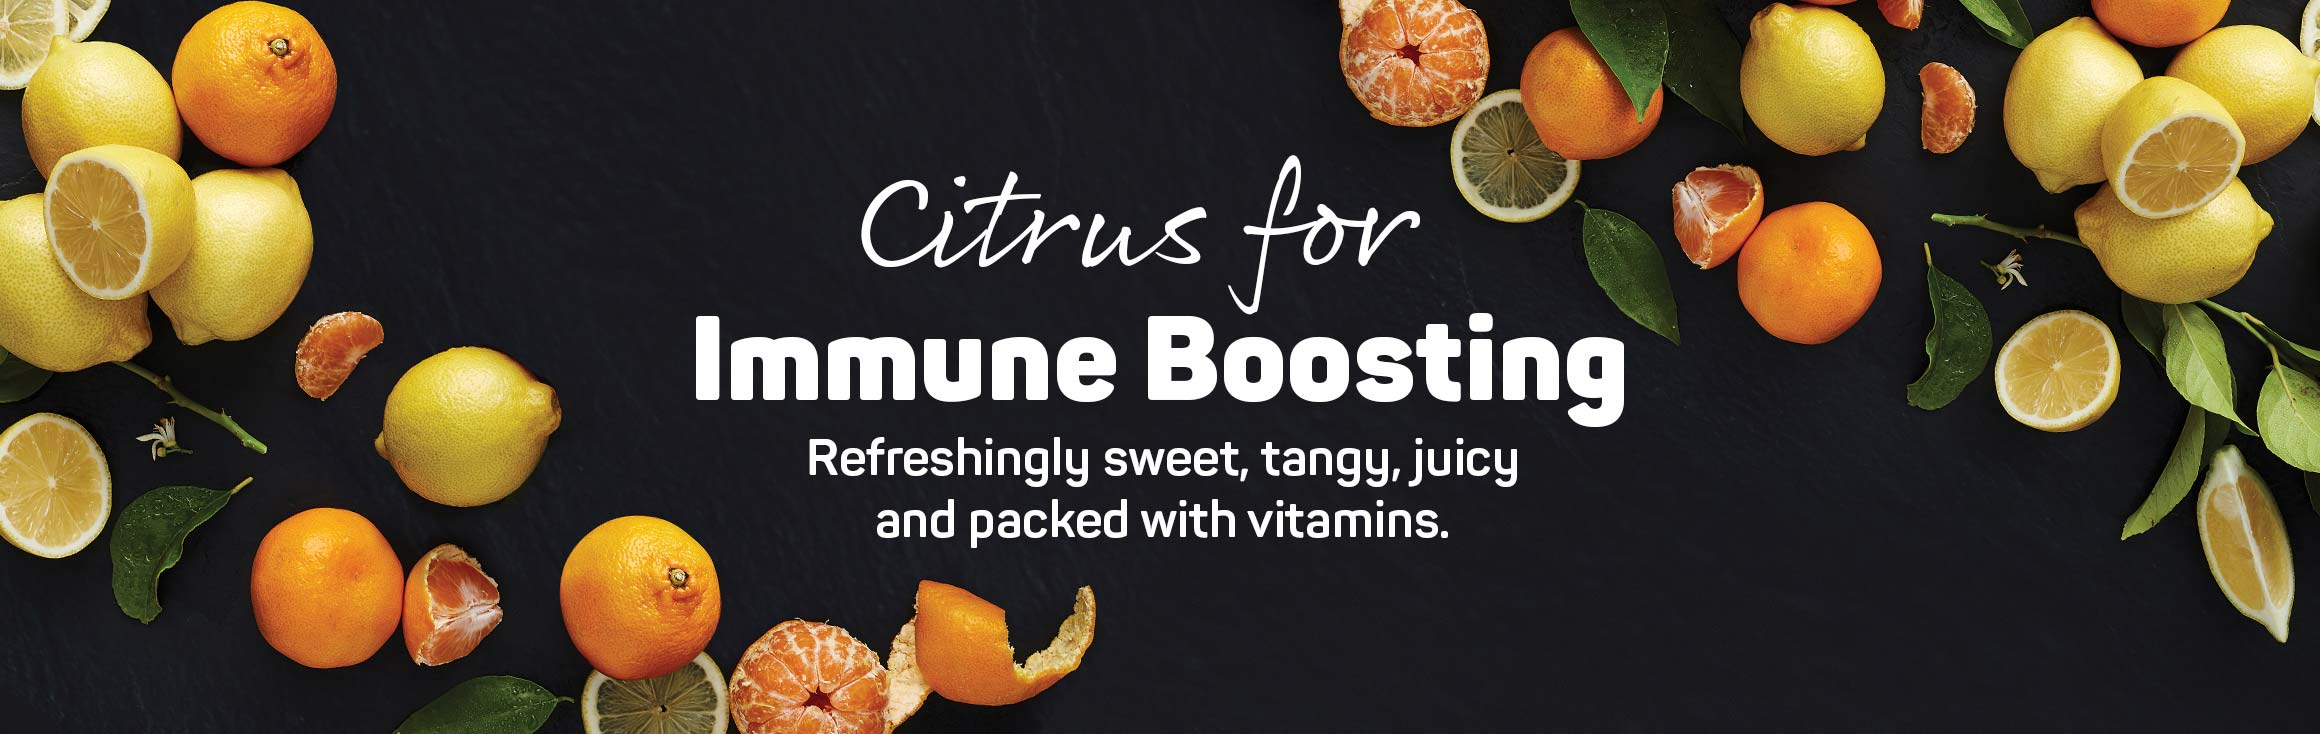 Citrus for Immune Boosting. Refreshingly sweet, tangy, juicy and packed with vitamins